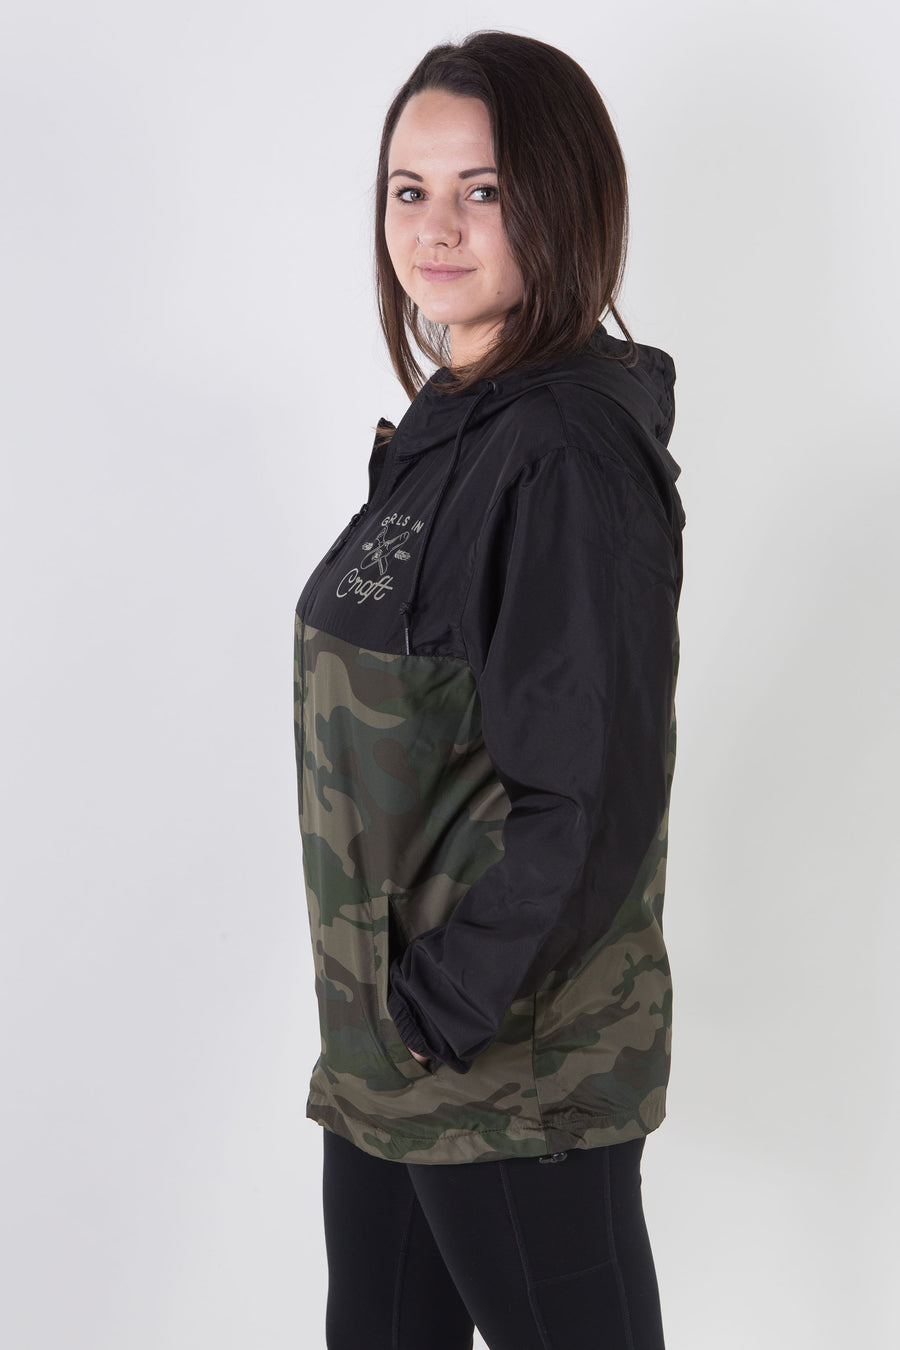 Bottle x Opener Windbreaker-Black/Camo